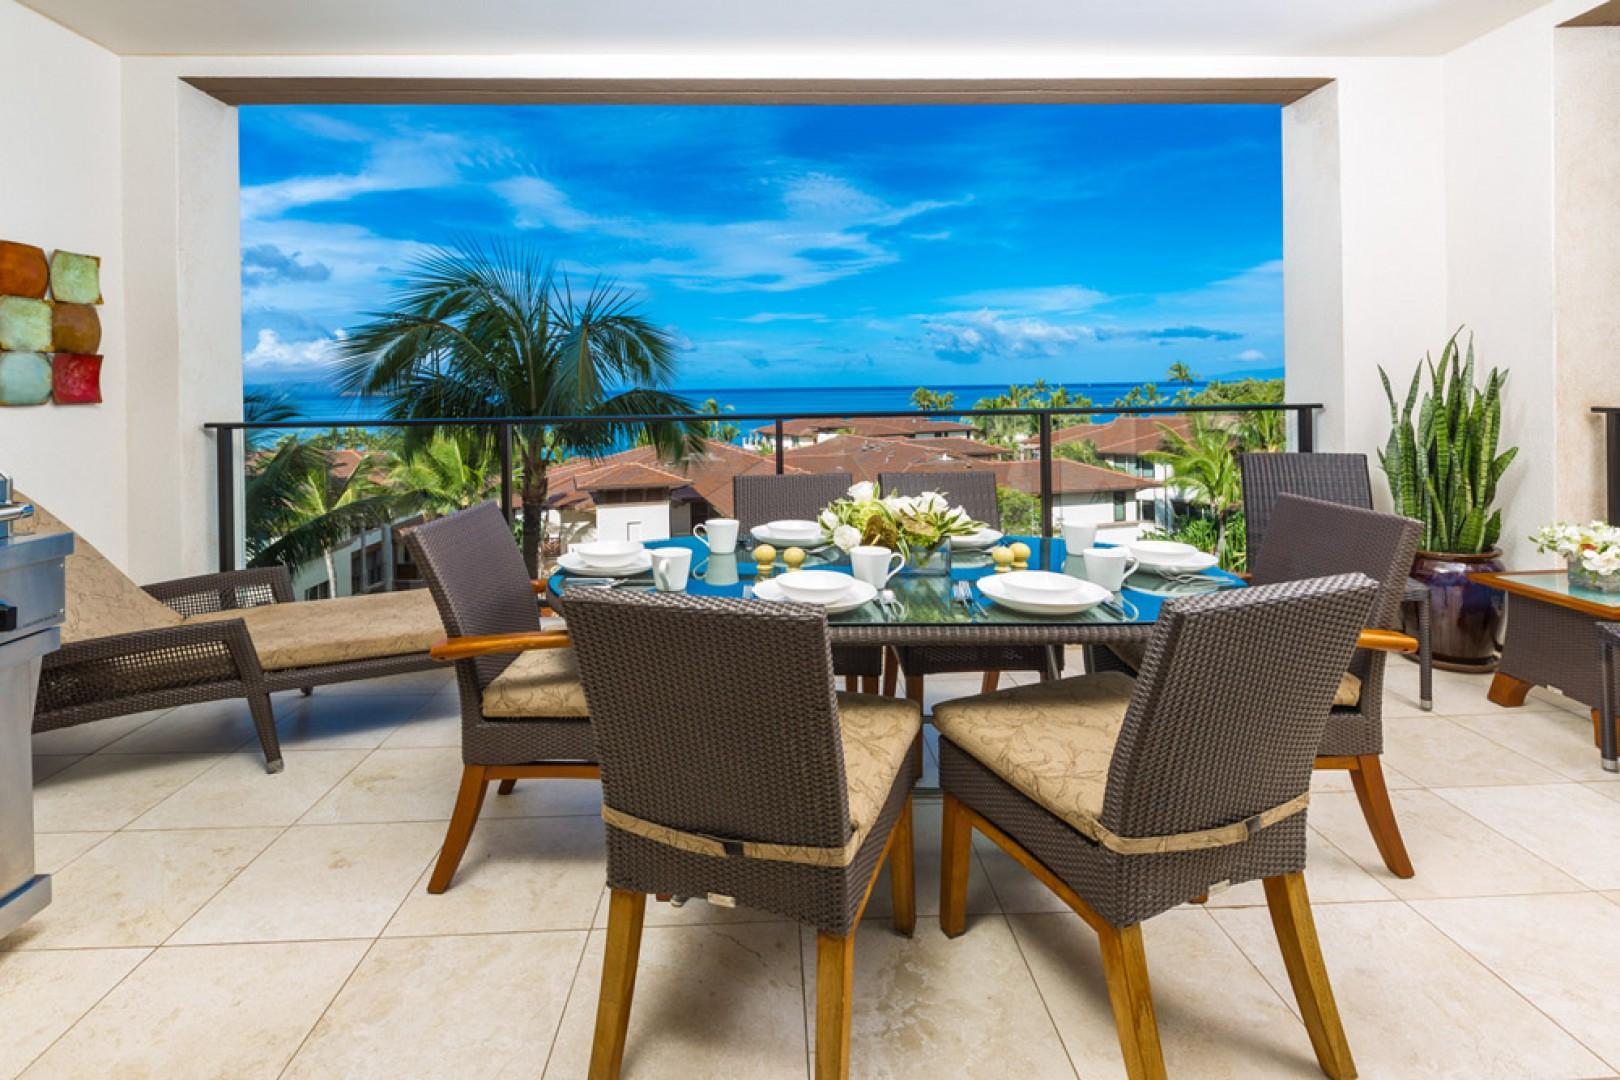 Covered ocean-view terrace with spacious outdoor lounging and dining area, plus Viking gas barbecue grill.